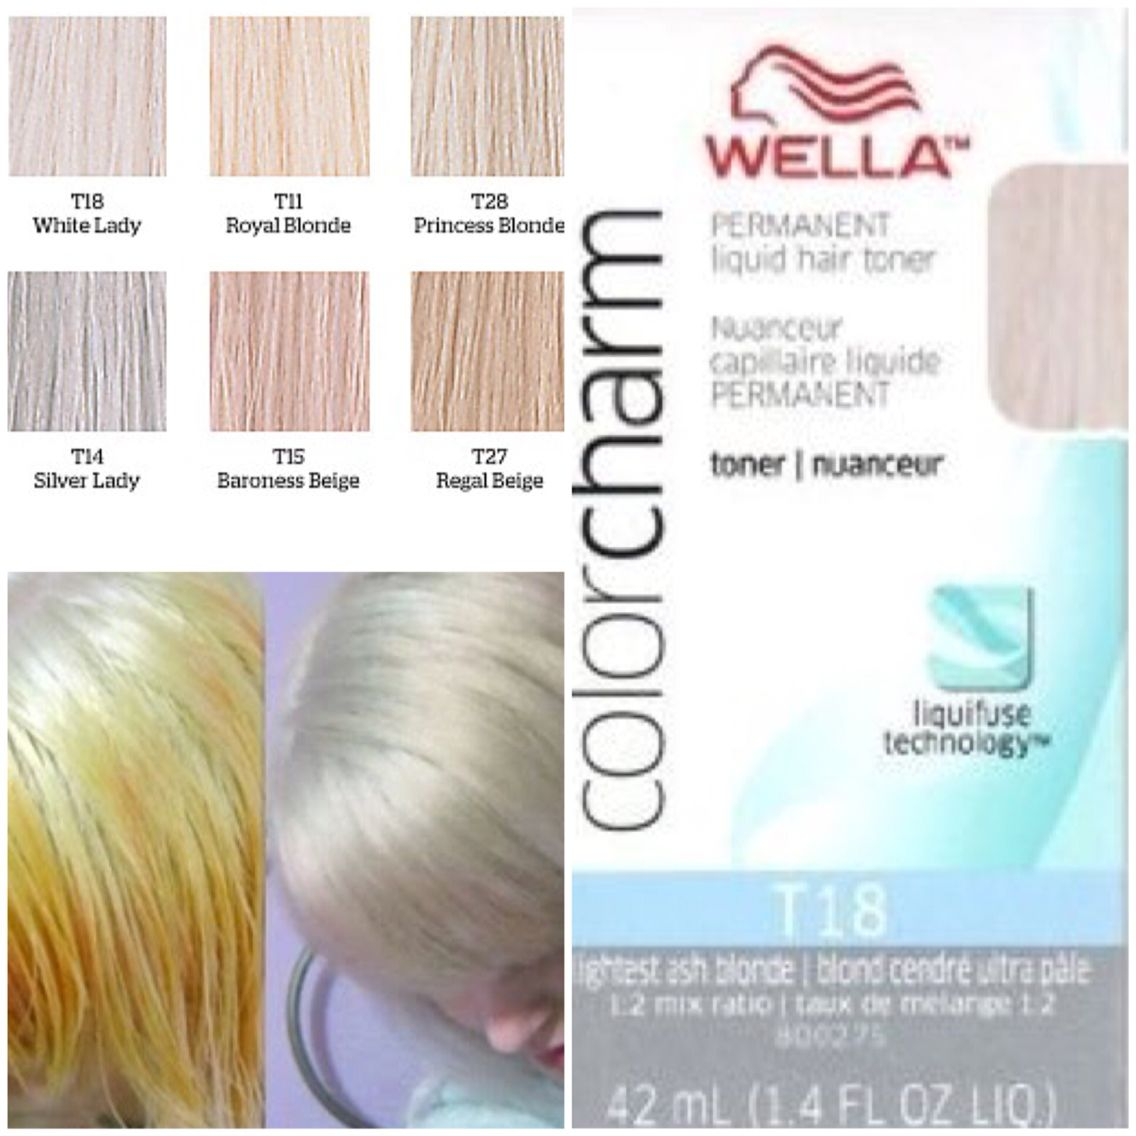 Wella T 18 Toner For Blonde Platinum Hair Pre Lighten The Hair With Wella Bleach To Desired Level Toner For Blonde Hair Hair Color Formulas Wella Hair Toner